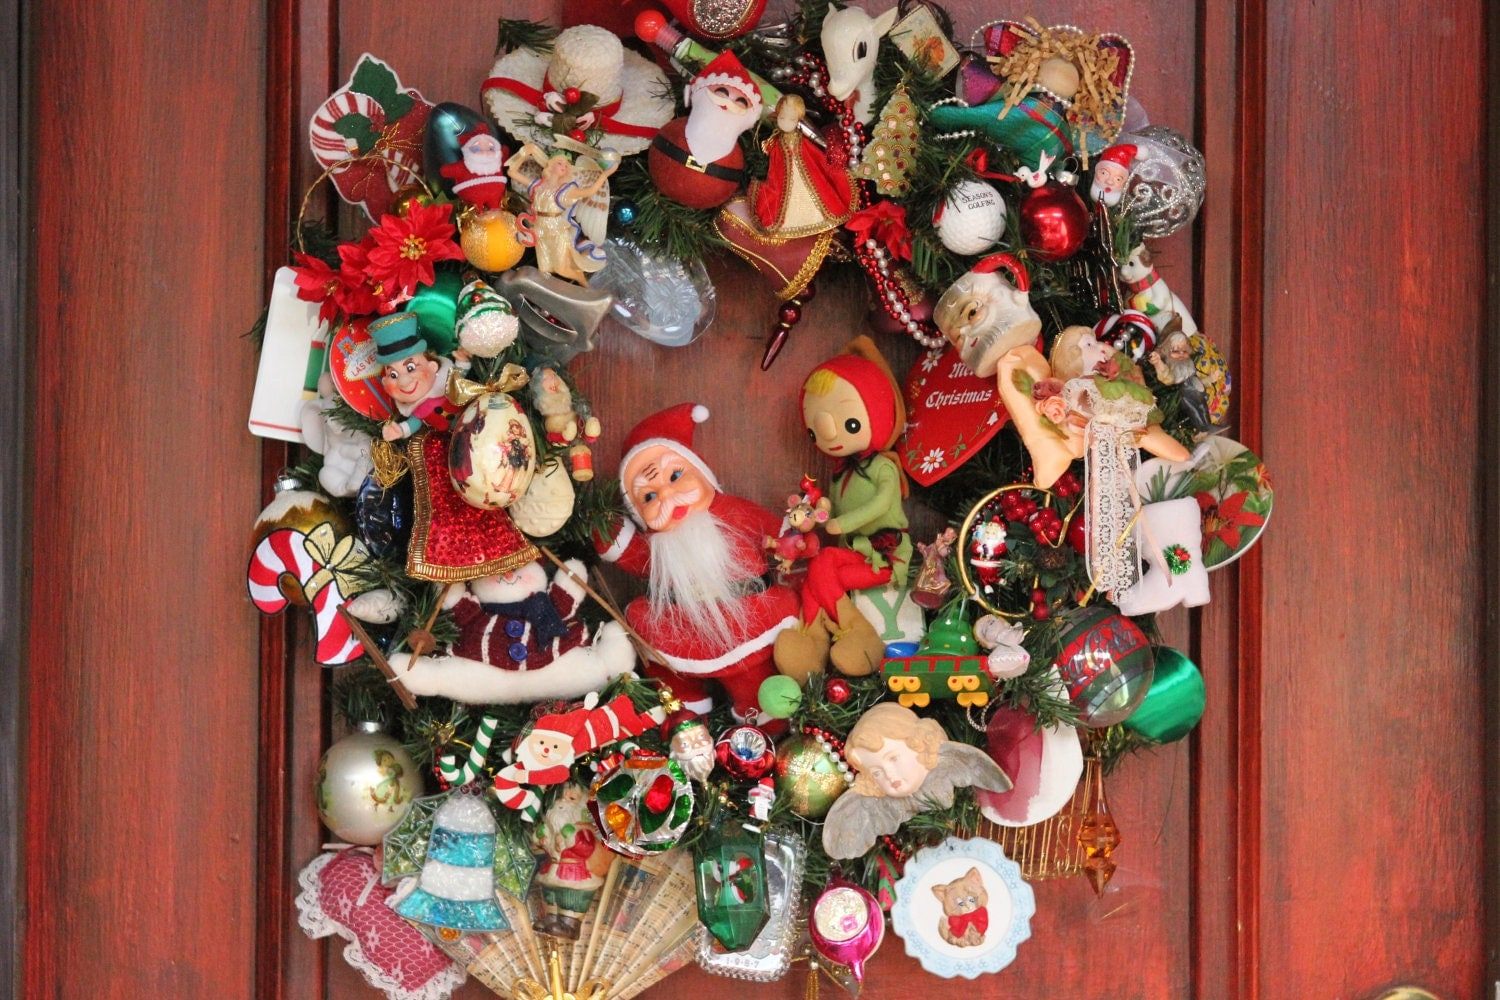 XL Timeless, nostalgic Americana Christmas wreath w charming vintage Santa, sweet gnome elf , loads of vintage ornaments